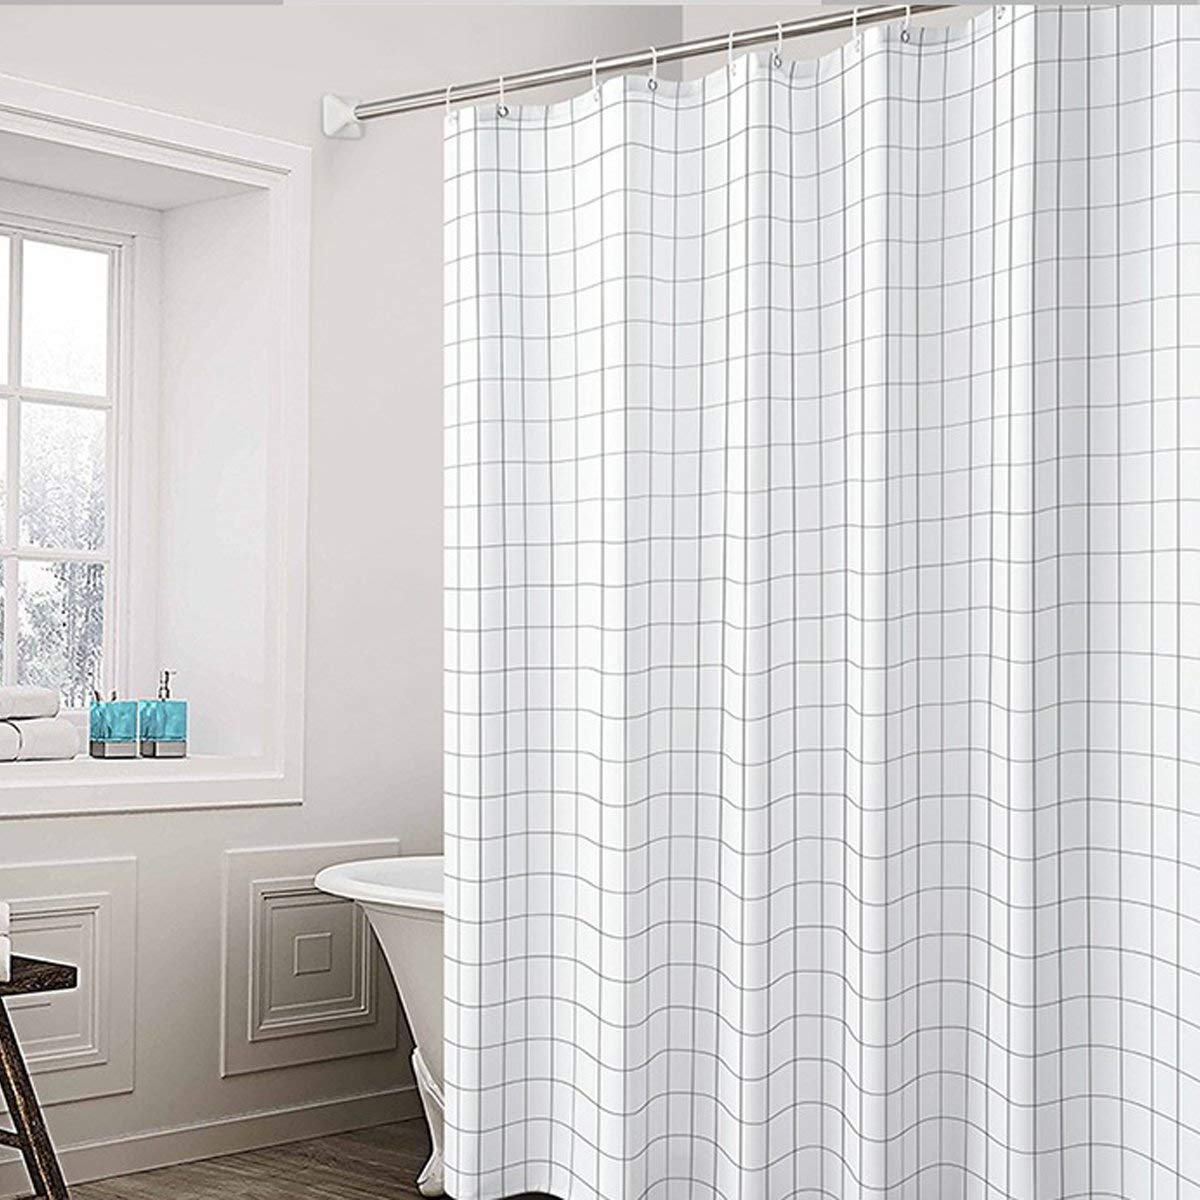 Get Quotations Togather Fabric Shower Curtain Mildew Resistant Anti Bacterial White And Black Curtains